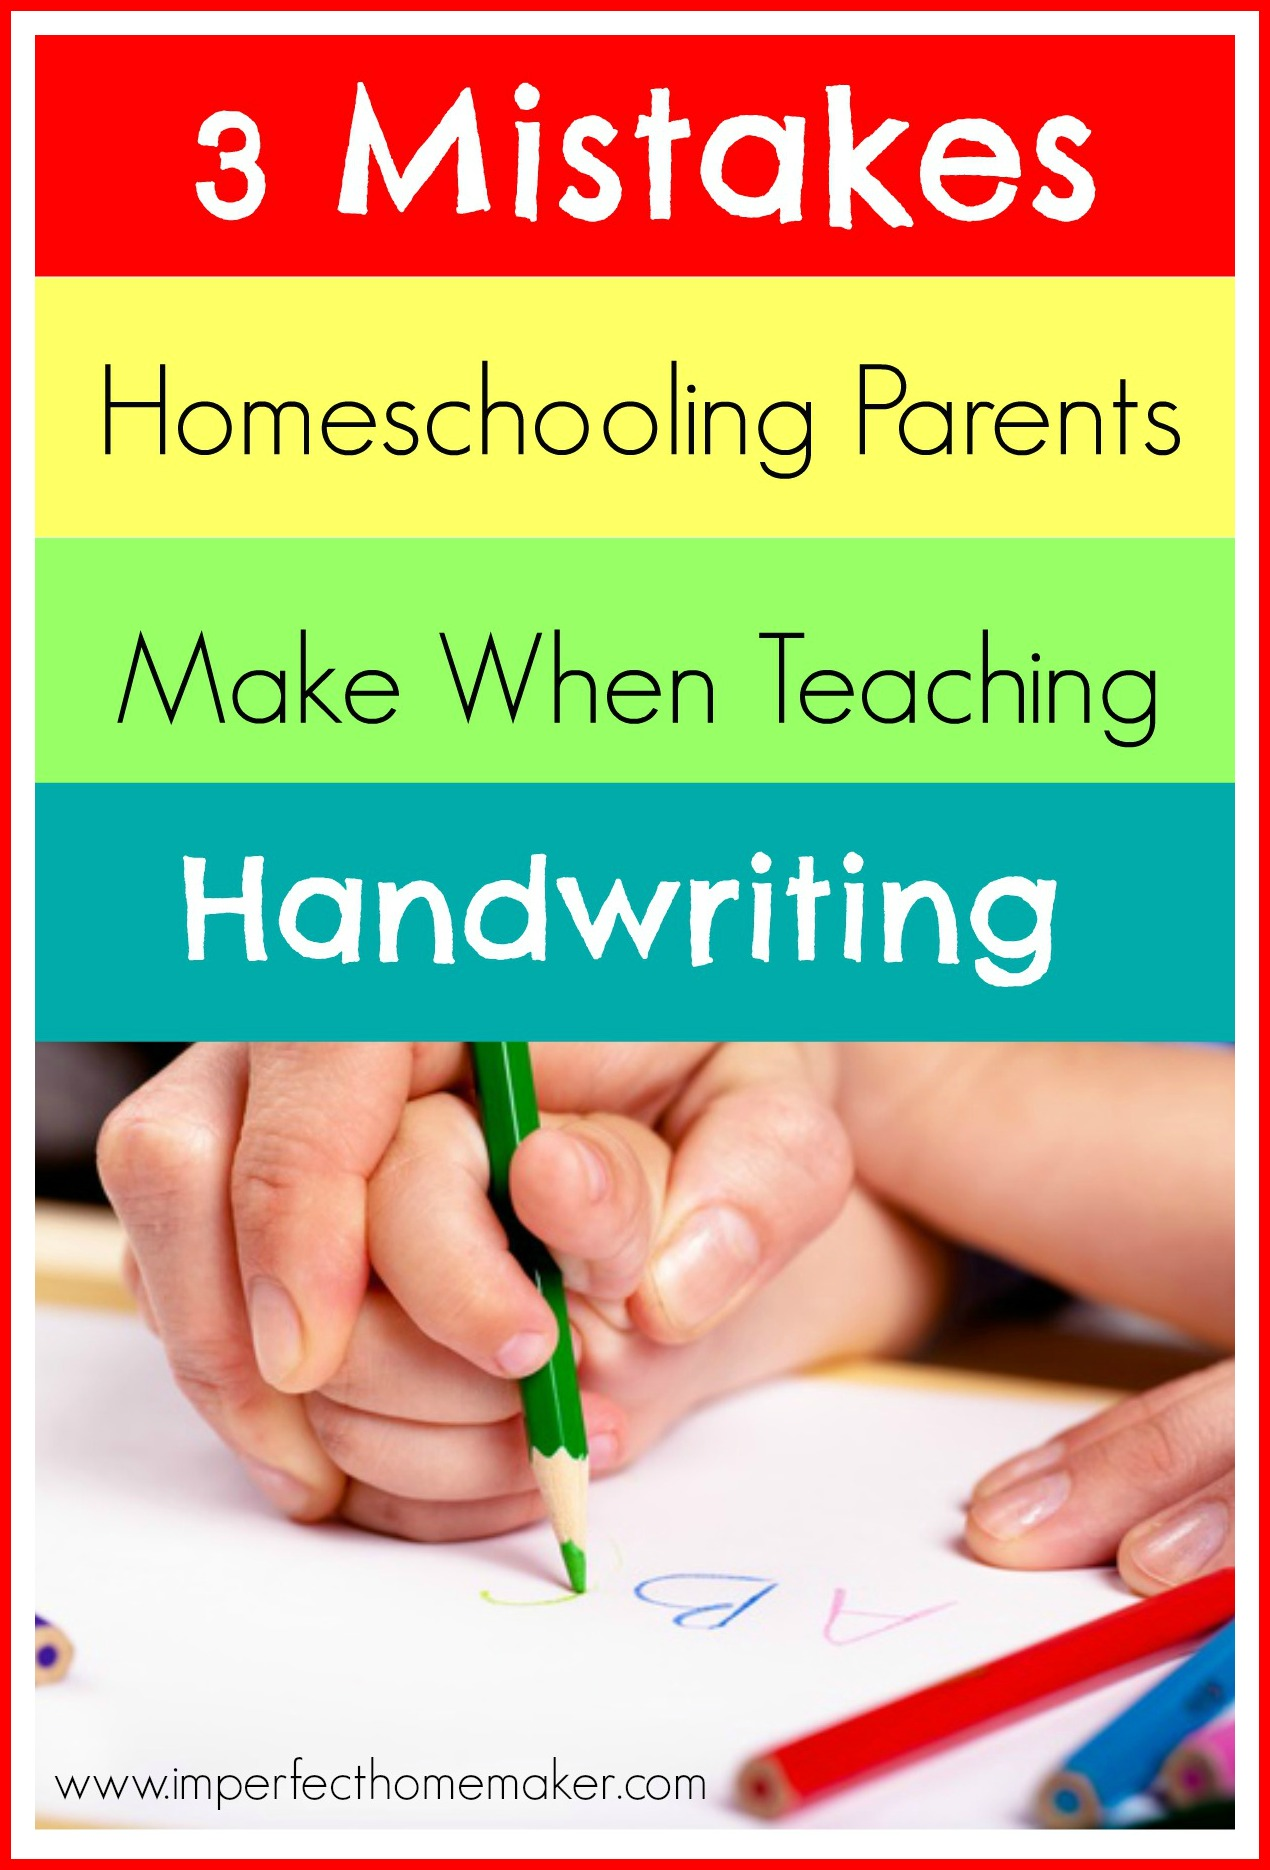 3 Mistakes Homeschooling Parents Make When Teaching